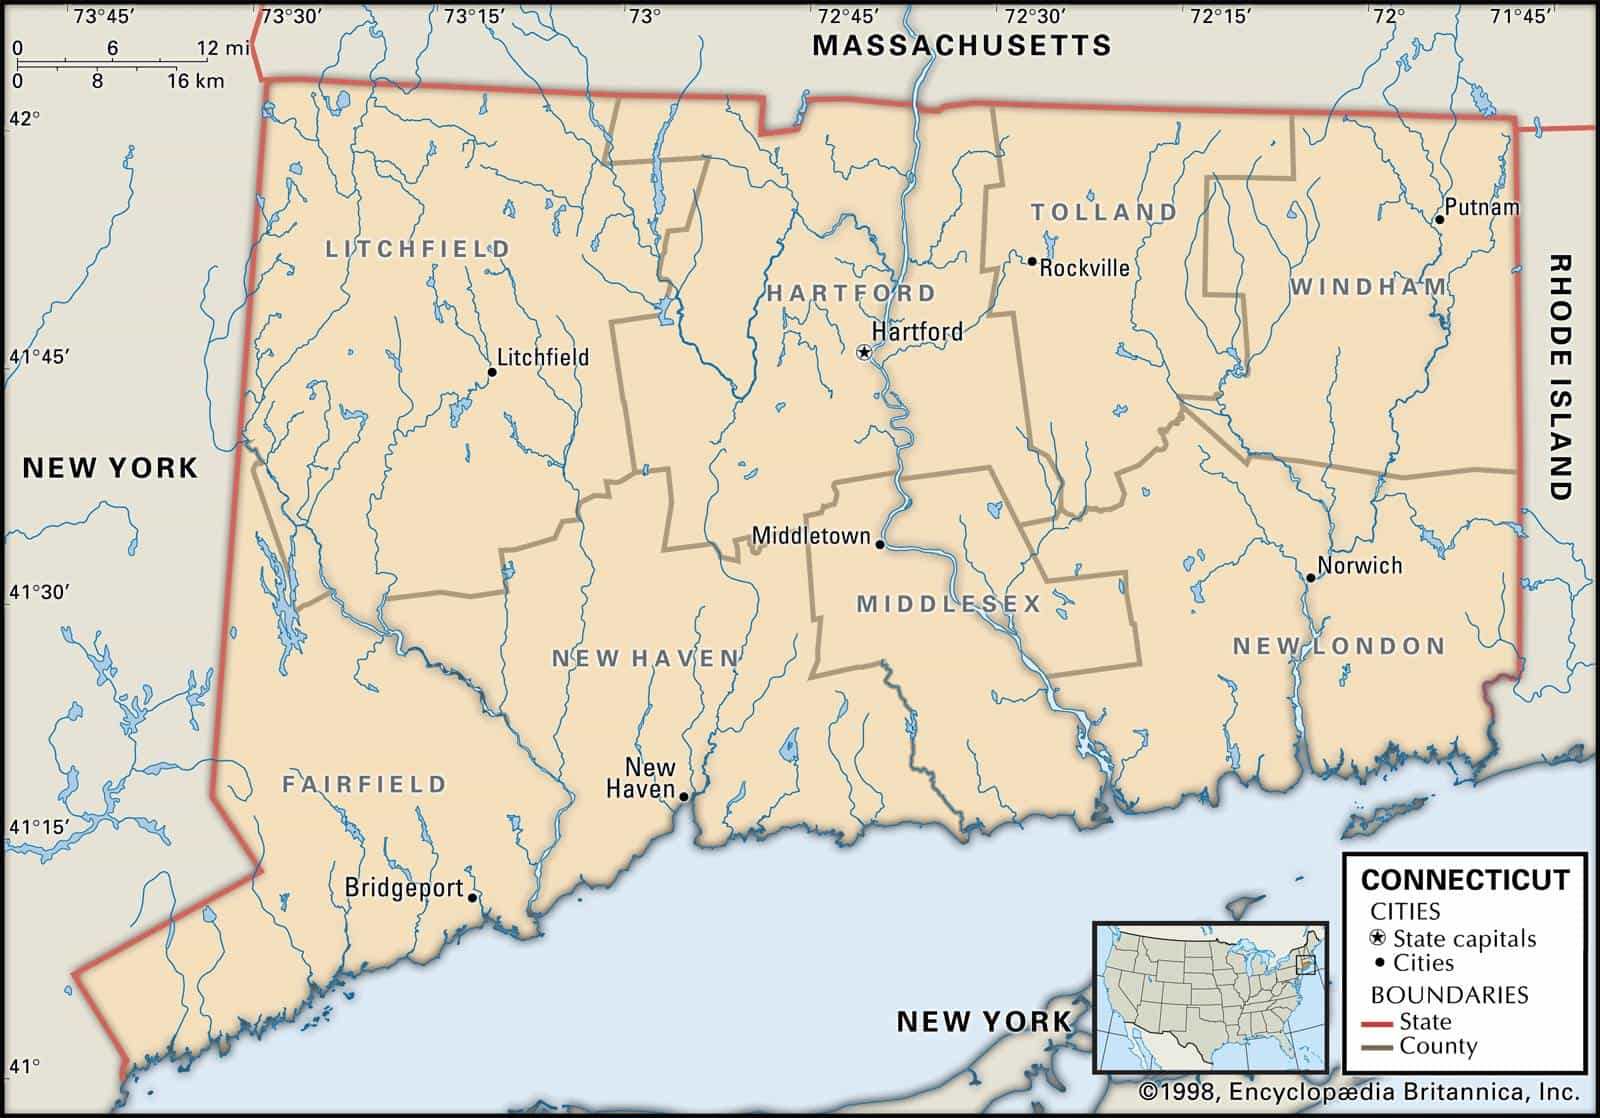 State of Connecticut Counties and Historical Facts on map ct cities towns, map ri conn mass, cromwell conn, new haven conn, flag of conn, map united states constitution article 4, map for connecticut, newtown conn, hartford conn, us map conn, bristol conn, mystic conn, greenwich conn, state of conn, stamford conn,